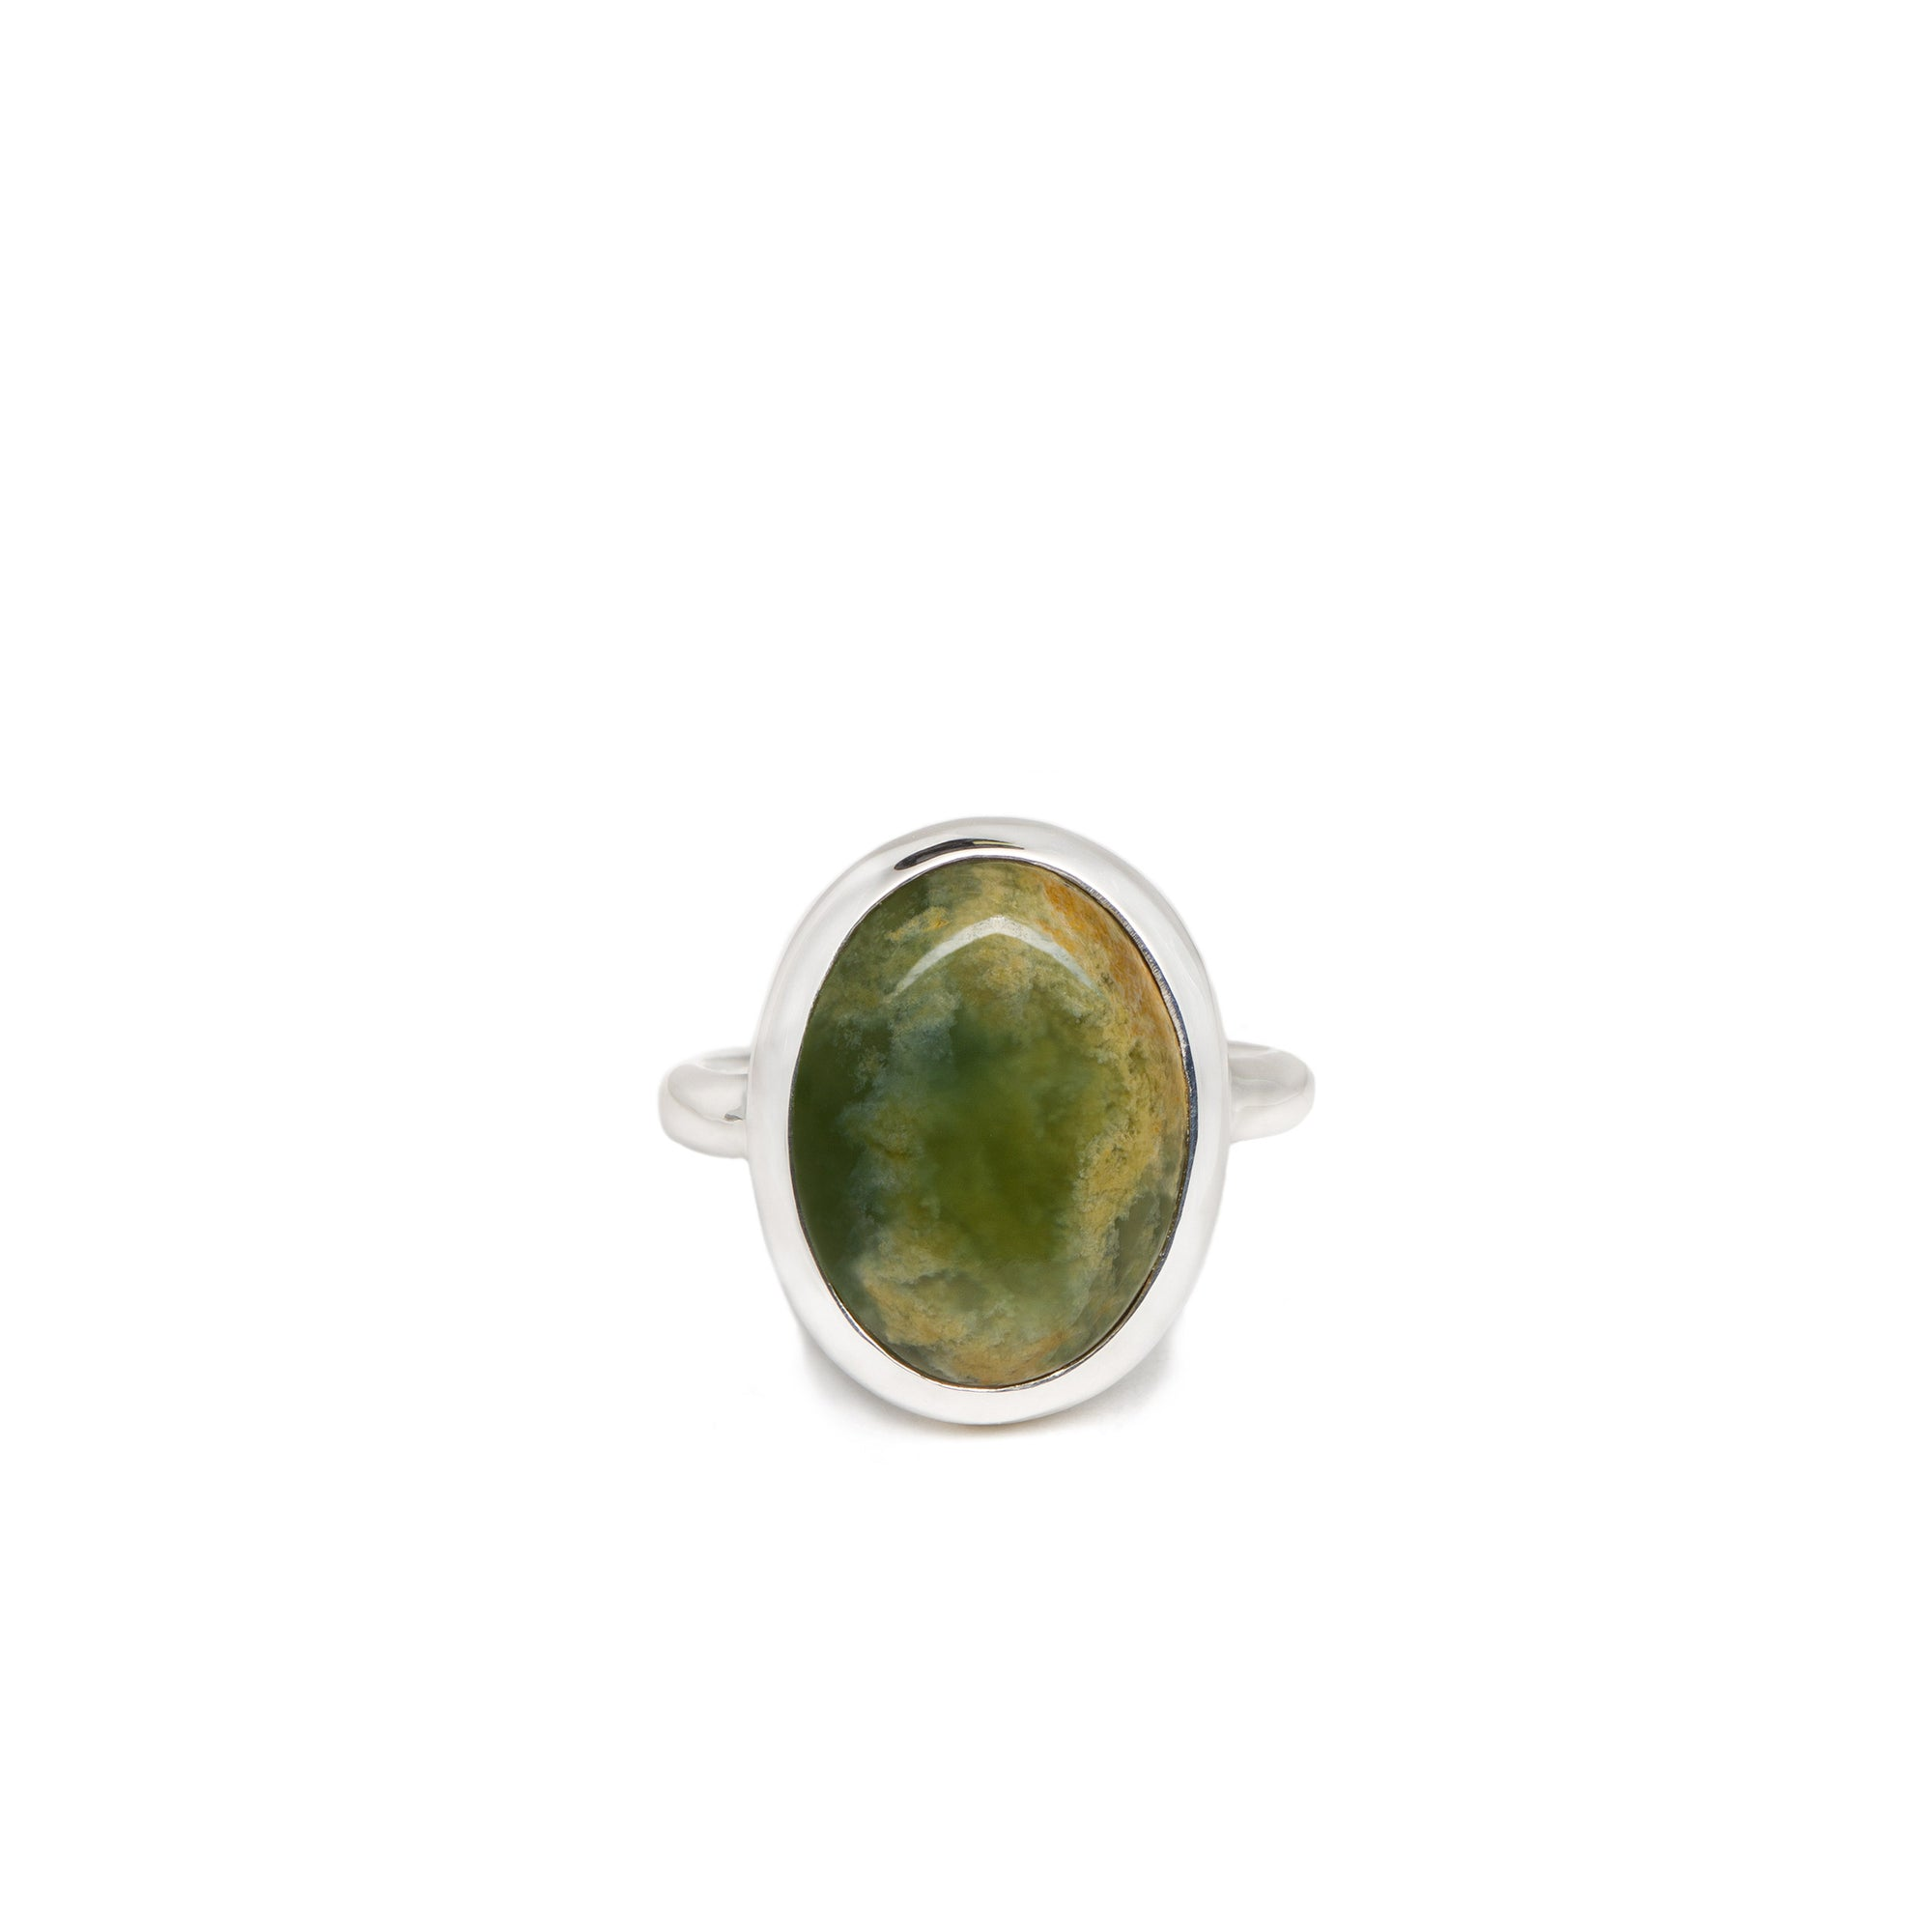 New Zealand Flower Jade Sterling Silver Ring - Size N½